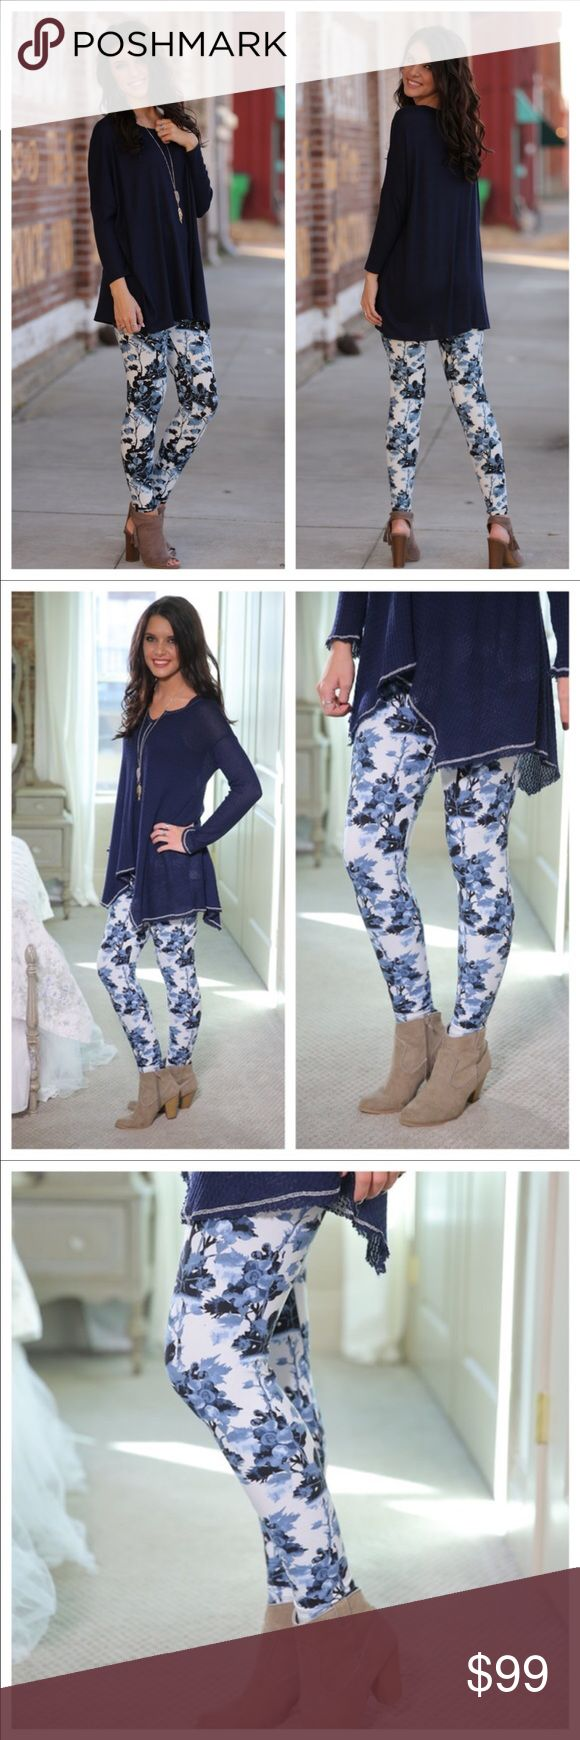 💙COMING SOON💙Blue and white leggings:💙 💙COMING SOON 💙Like this listing to be notified by price drop when they arrive.💙Blue and white leggings: 💙Spring Blue floral print leggings.  Super soft brushed knit 92% polyester and 8% spandex.  One size Infinity Raine Pants Leggings